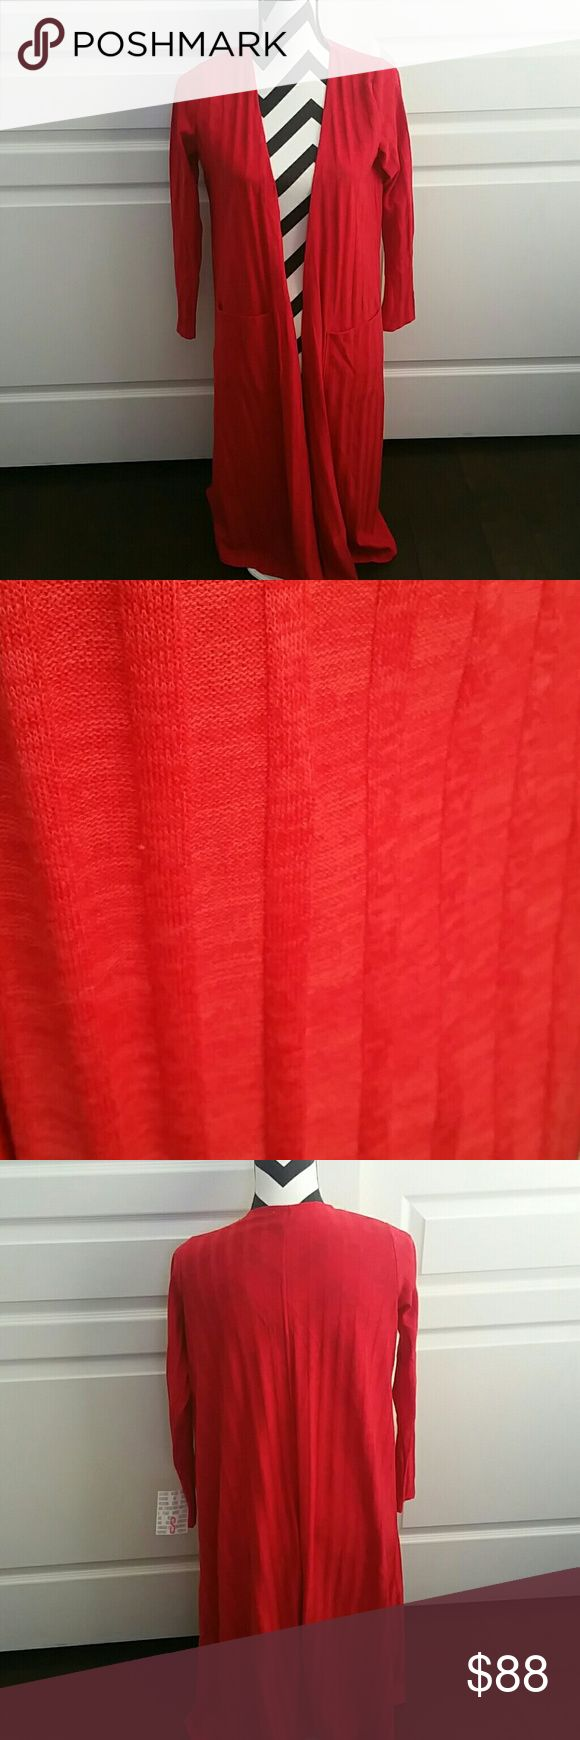 Lularoe Red Long Cardigan NWT Gorgeous red!!  Two front pockets.  Length to about the knees.  Brand new. LuLaRoe Sweaters